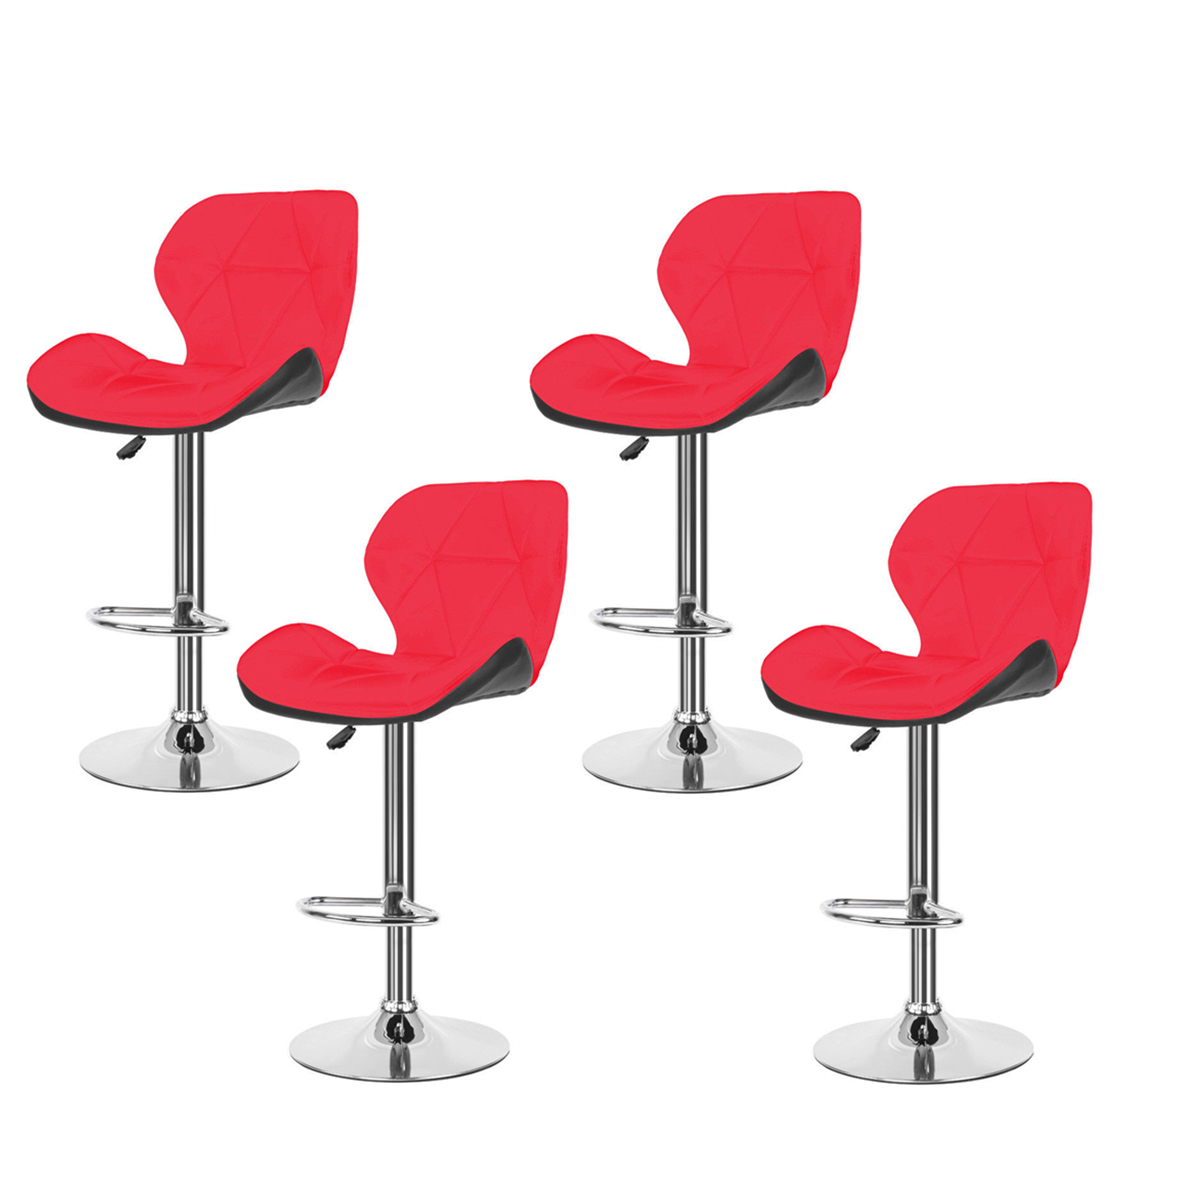 Strange Details About Set Of 4 Modern Bar Stool Pu Leather Seat Dining Chair Counter Kitchen Red New Gmtry Best Dining Table And Chair Ideas Images Gmtryco